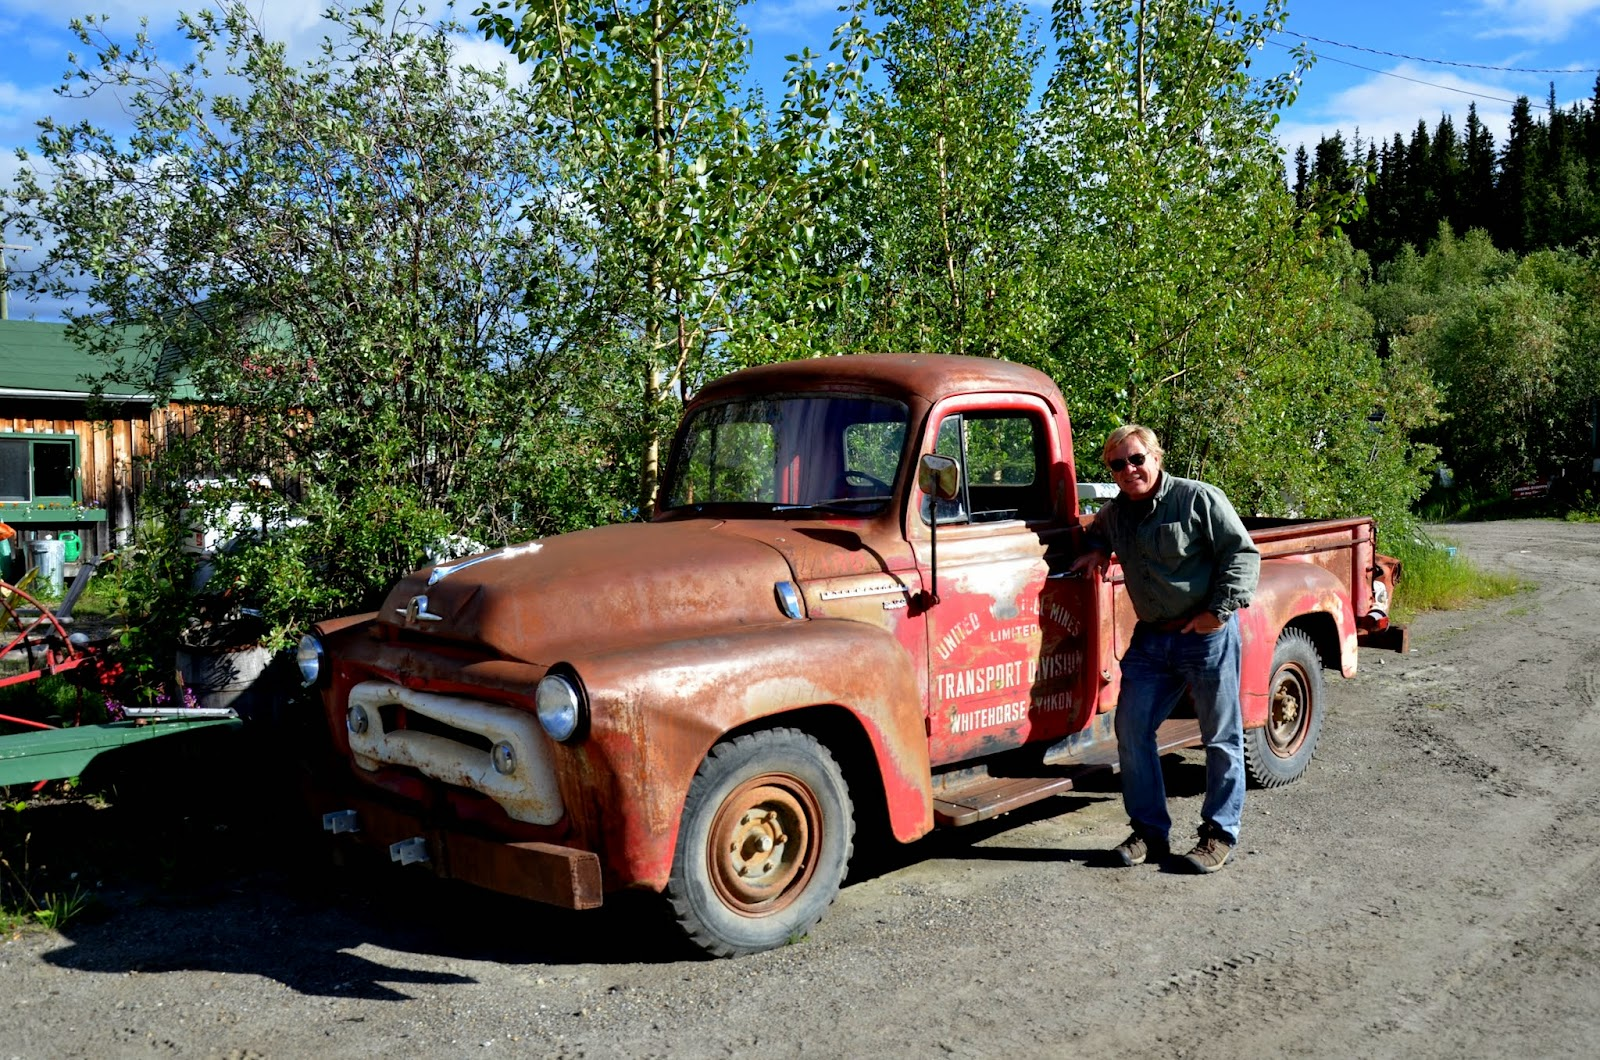 One of many old vehicals